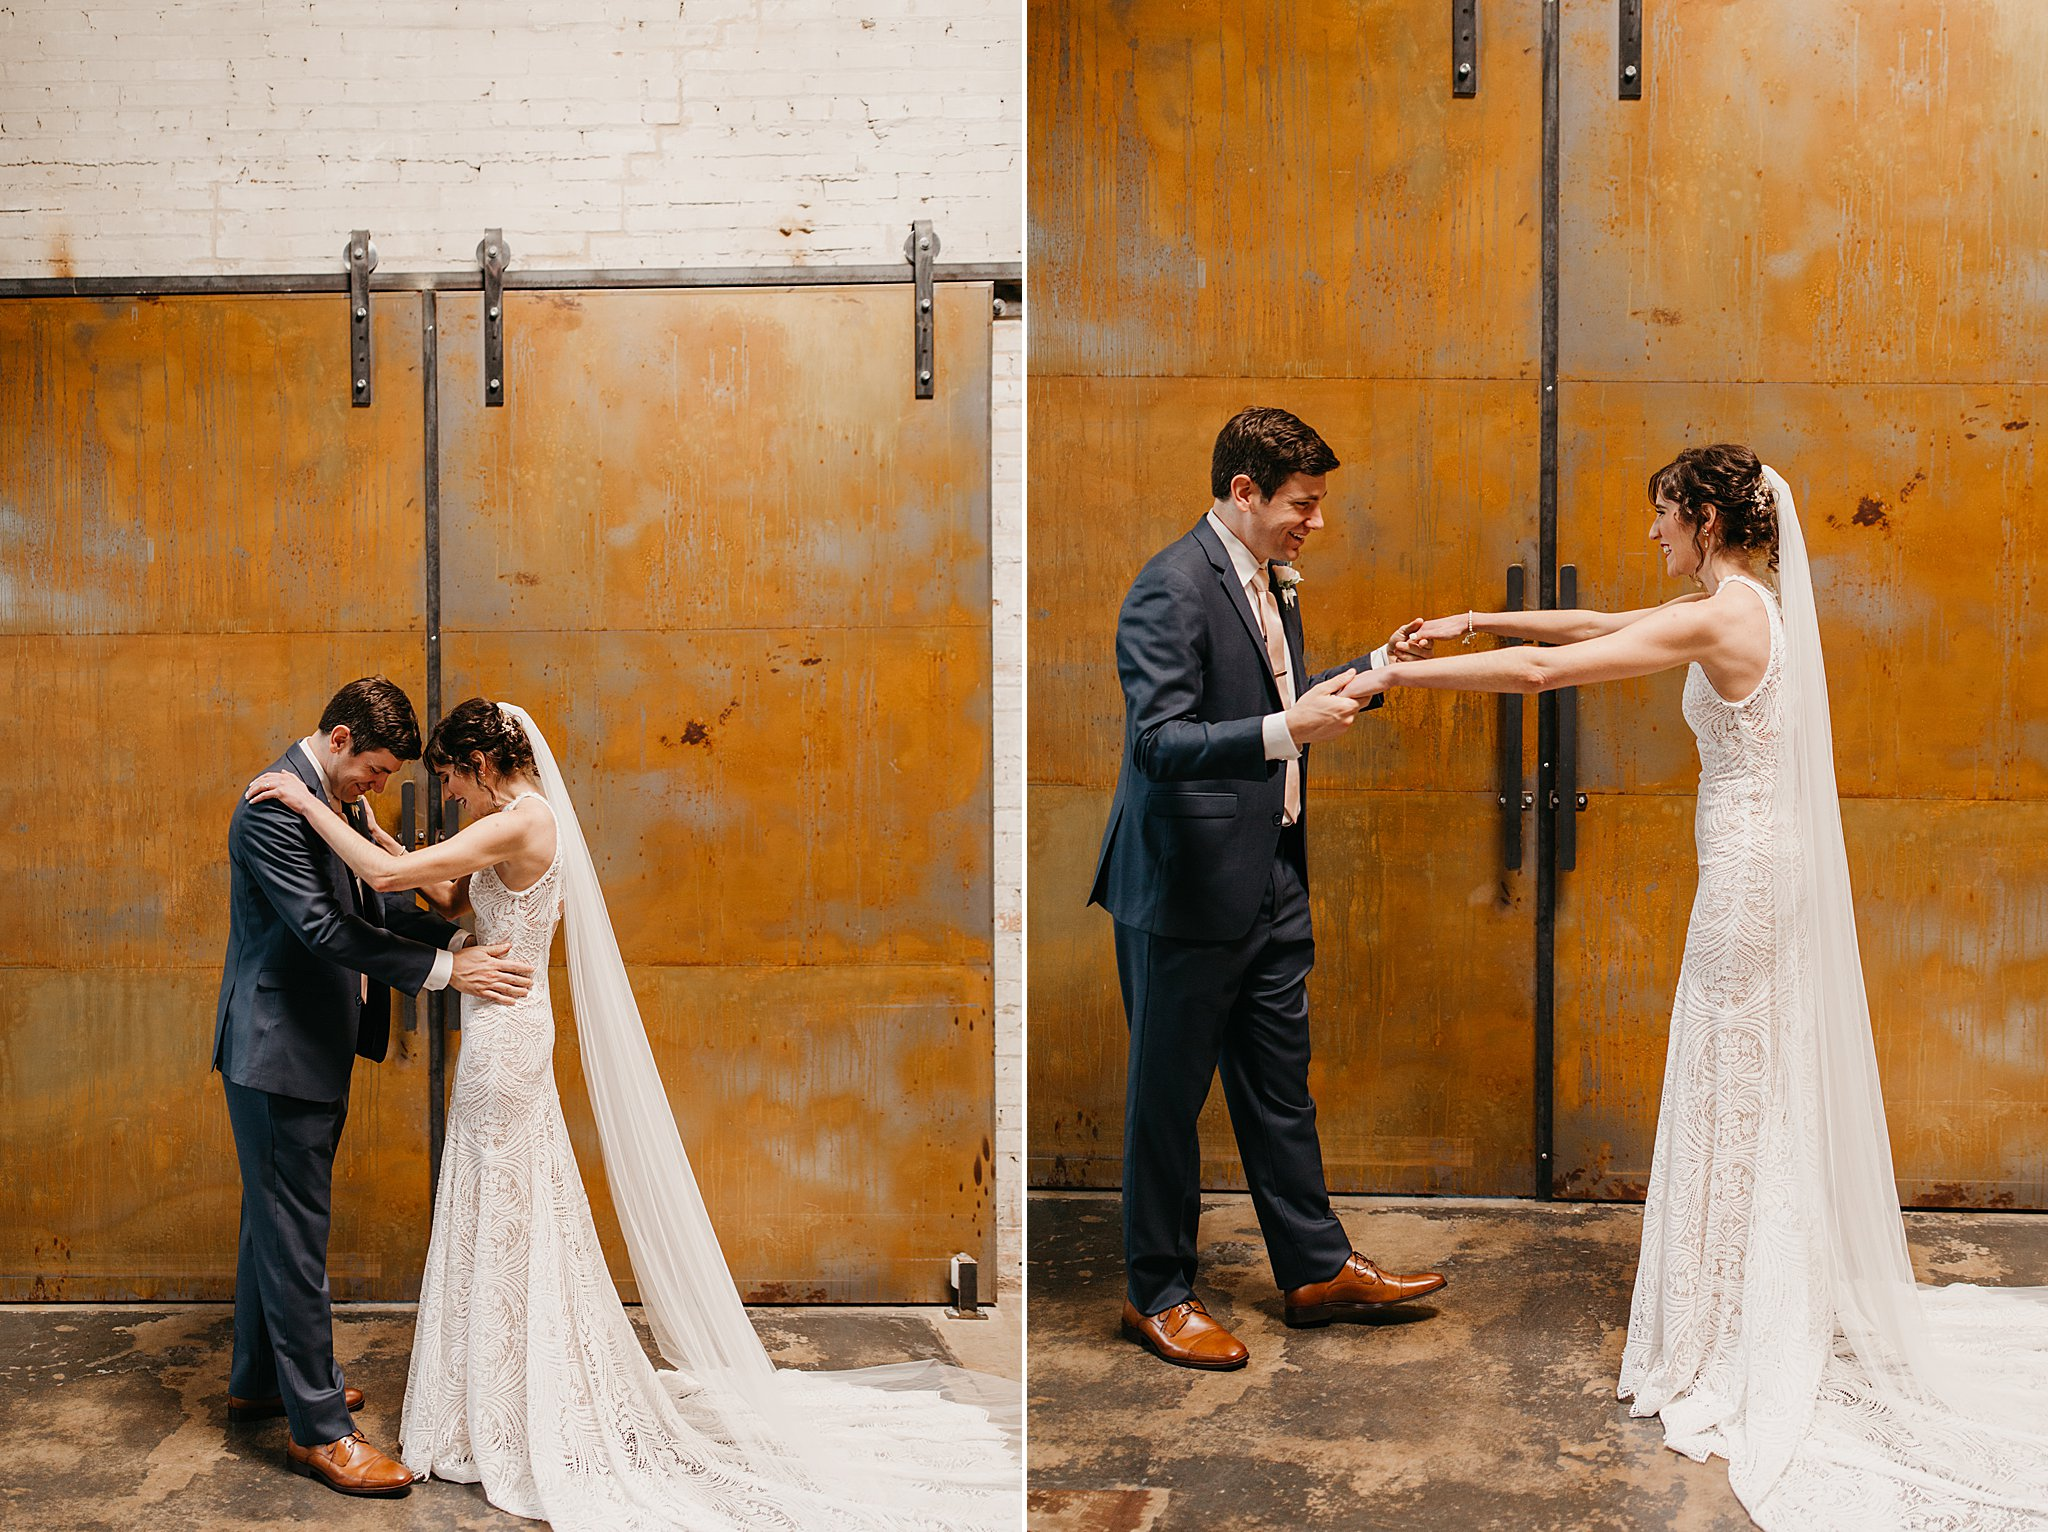 Wilderlove Co_Wedding Photographer_Industrial Wedding_Jewish Wedding_Dallas Texas Wedding_Brake & Clutch Warehouse_North Texas Photographer_0021.jpg